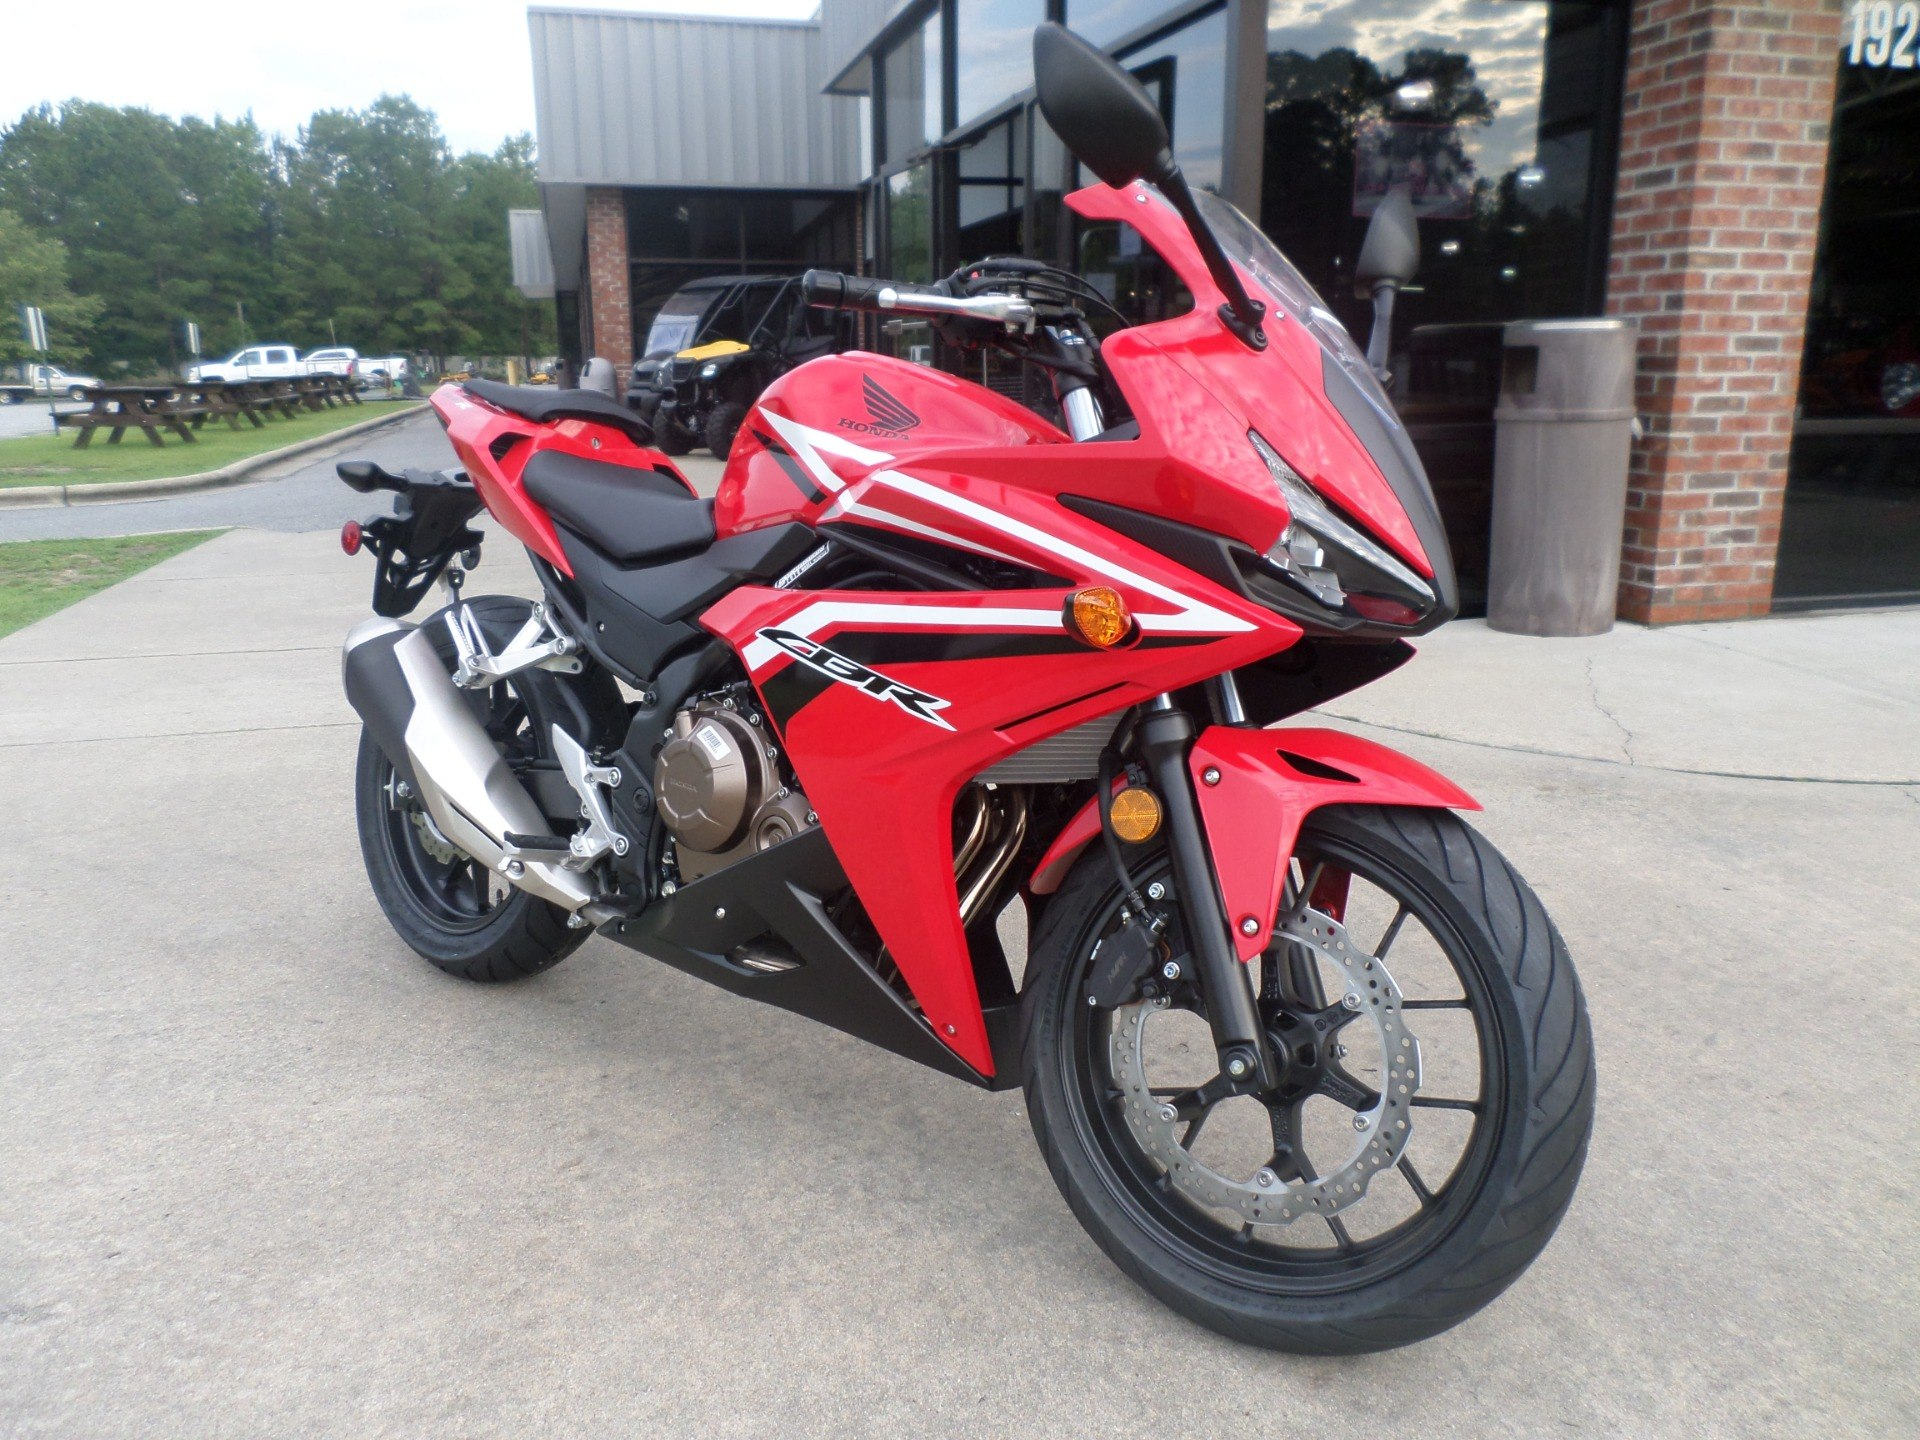 Wilmington Nc Motorcycle Parts By Owner Craigslist | Autos ...